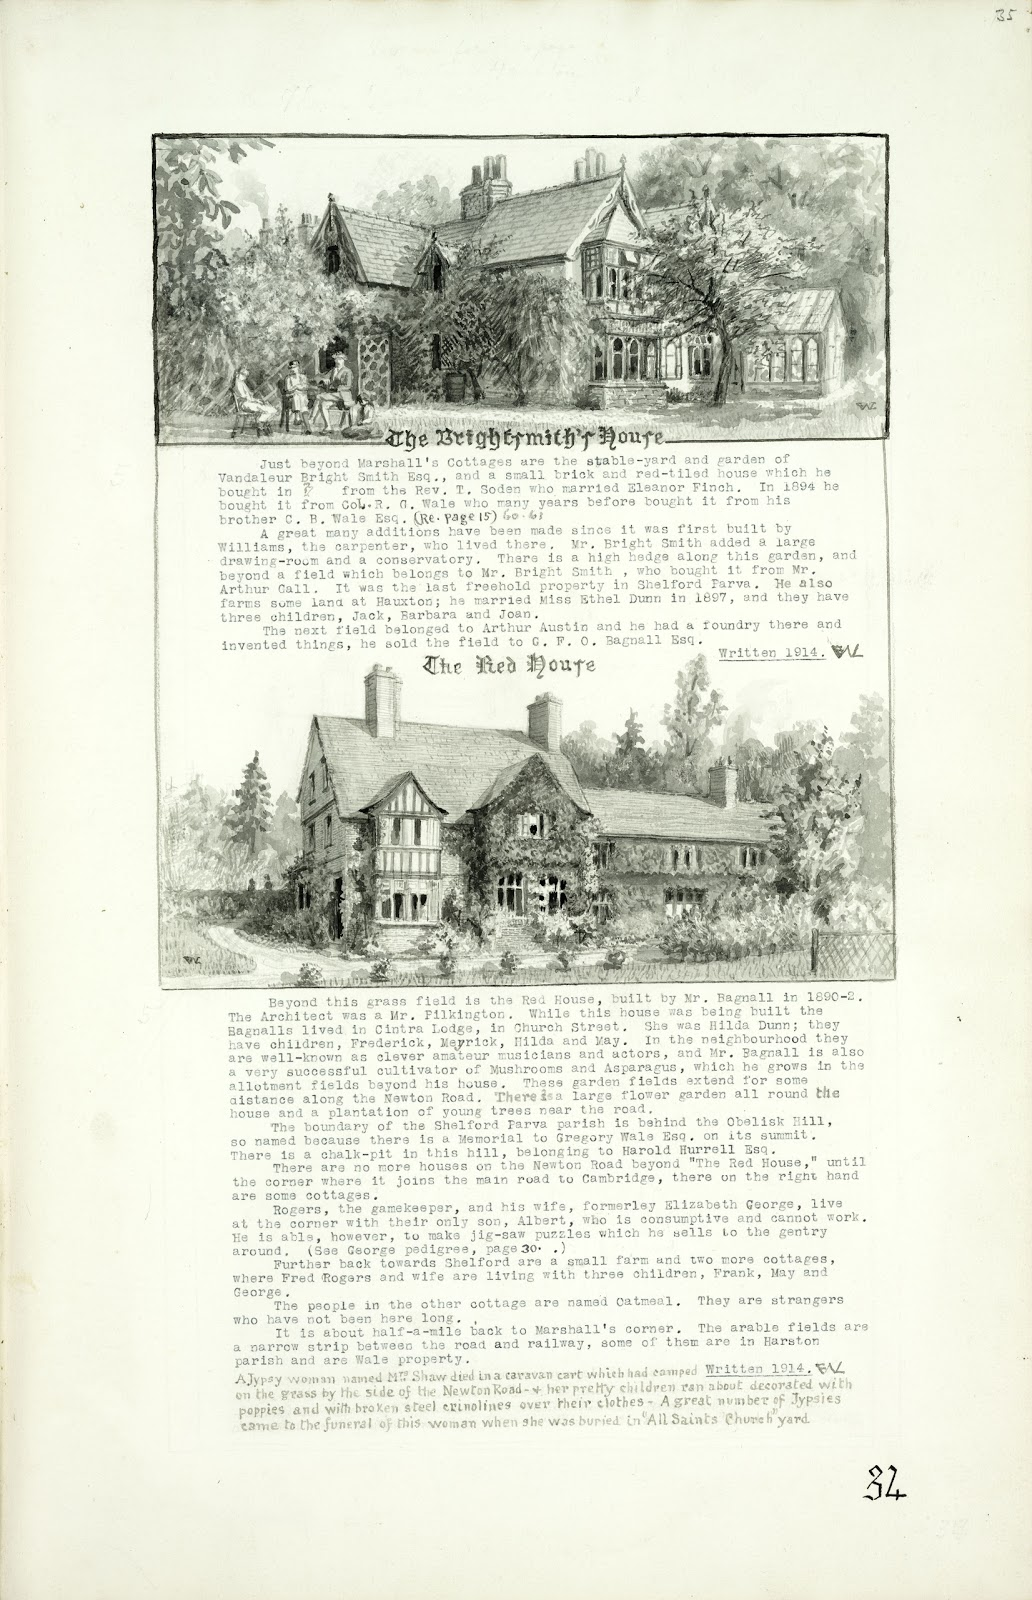 A Record of Shelford Parva by Fanny Wale P34 fo. 35, page 34: Two black and white watercolours of The Bright Smiths' house and the Red House both with descriptions, written in 1914. [fo.30 but within mount B]